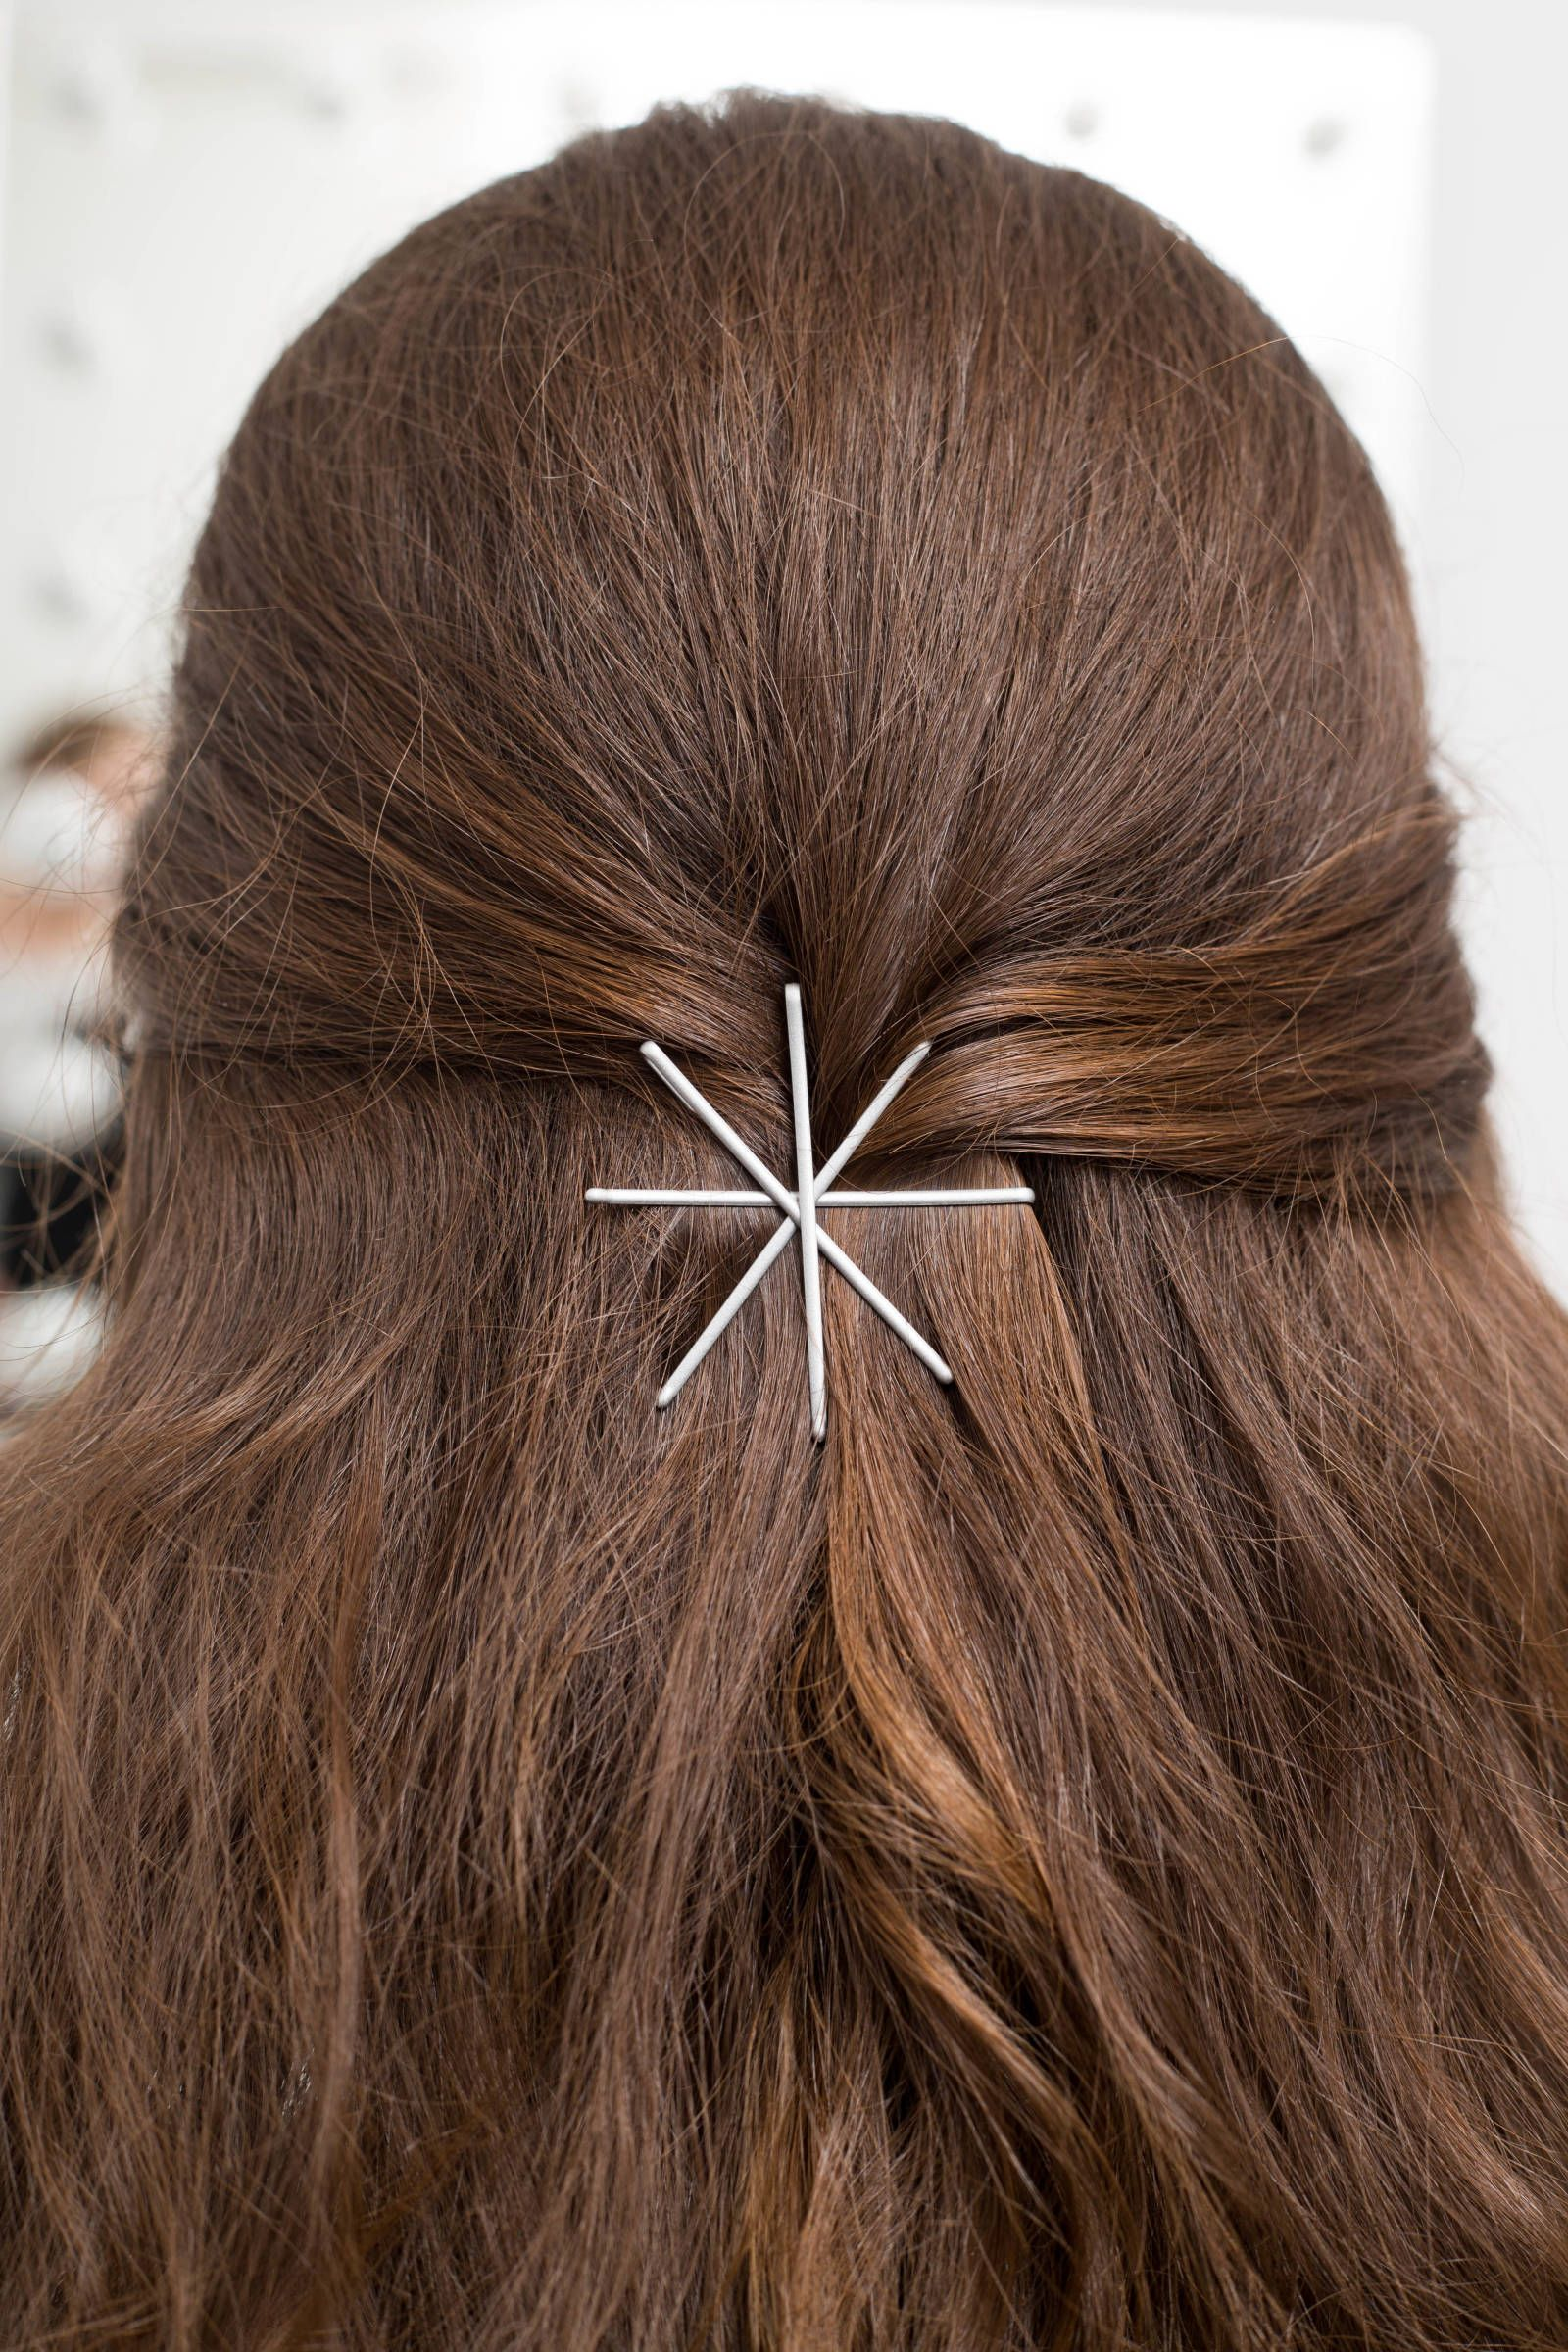 nextlevel hairstyles you can create with nothing but bobby pins